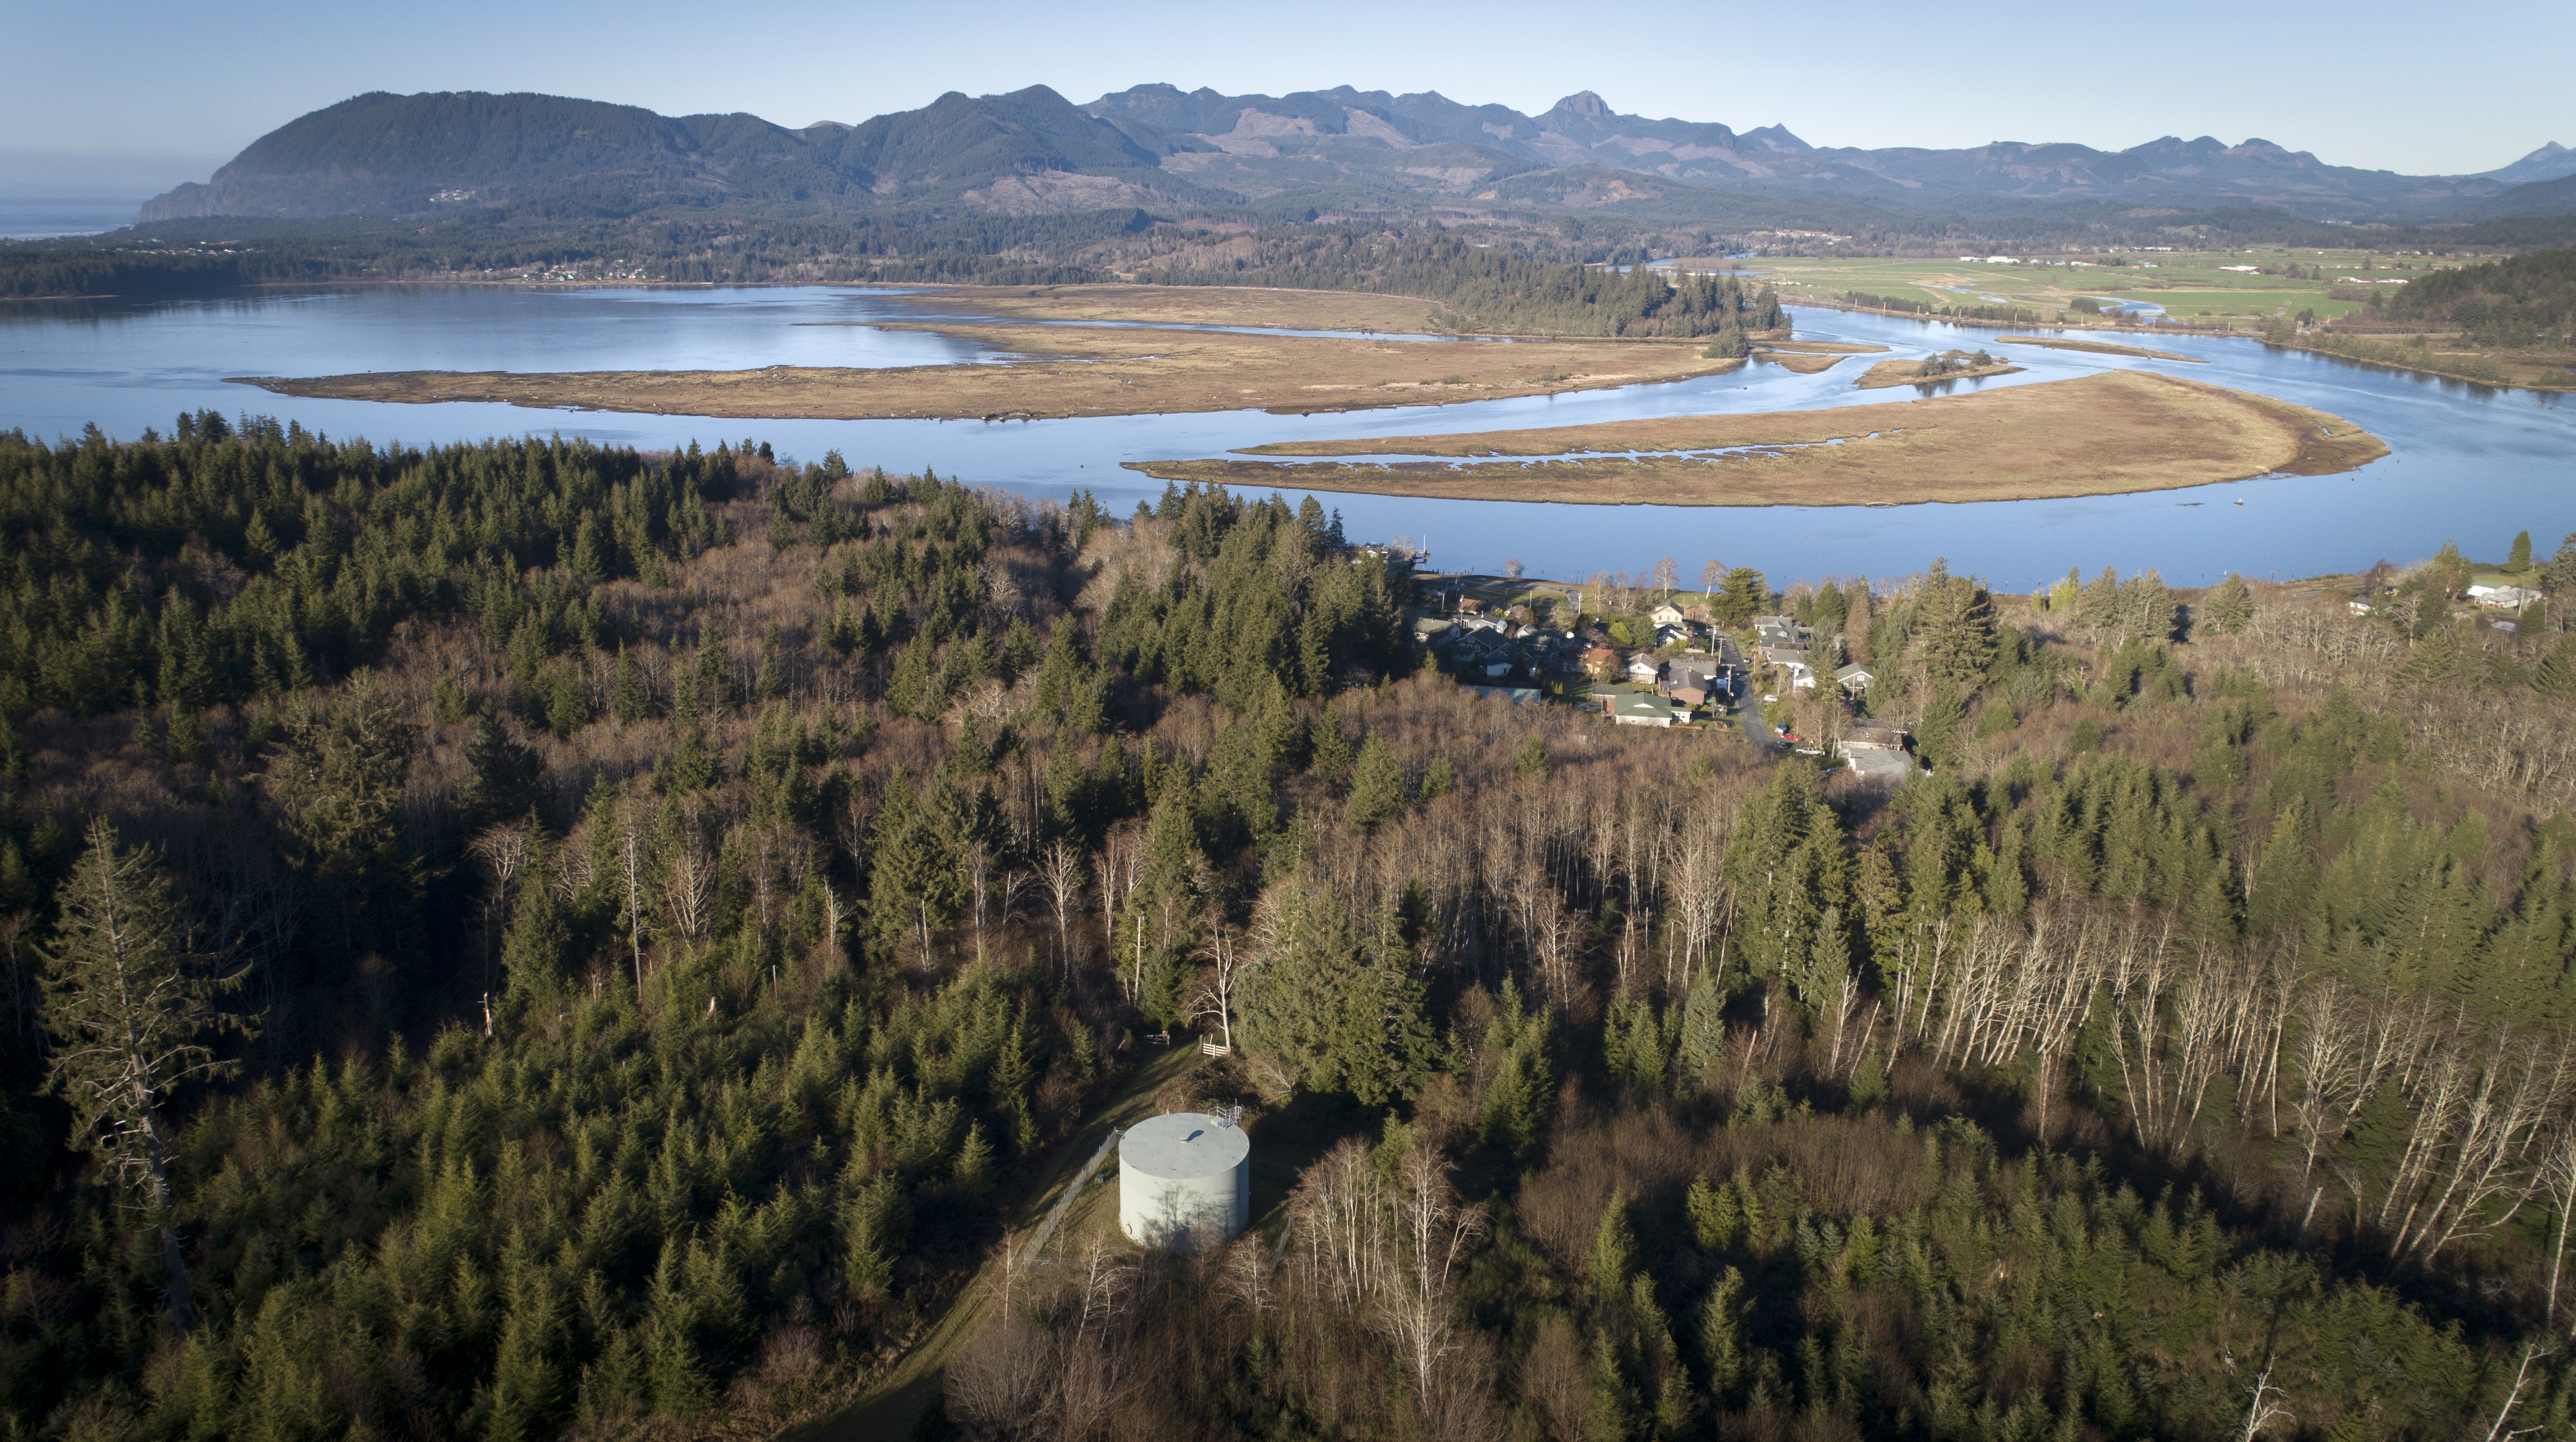 The 400 residents of Wheeler, Oregon, were forced to find a new water supply after muddy logging runoff filled the townÕs reservoirs.